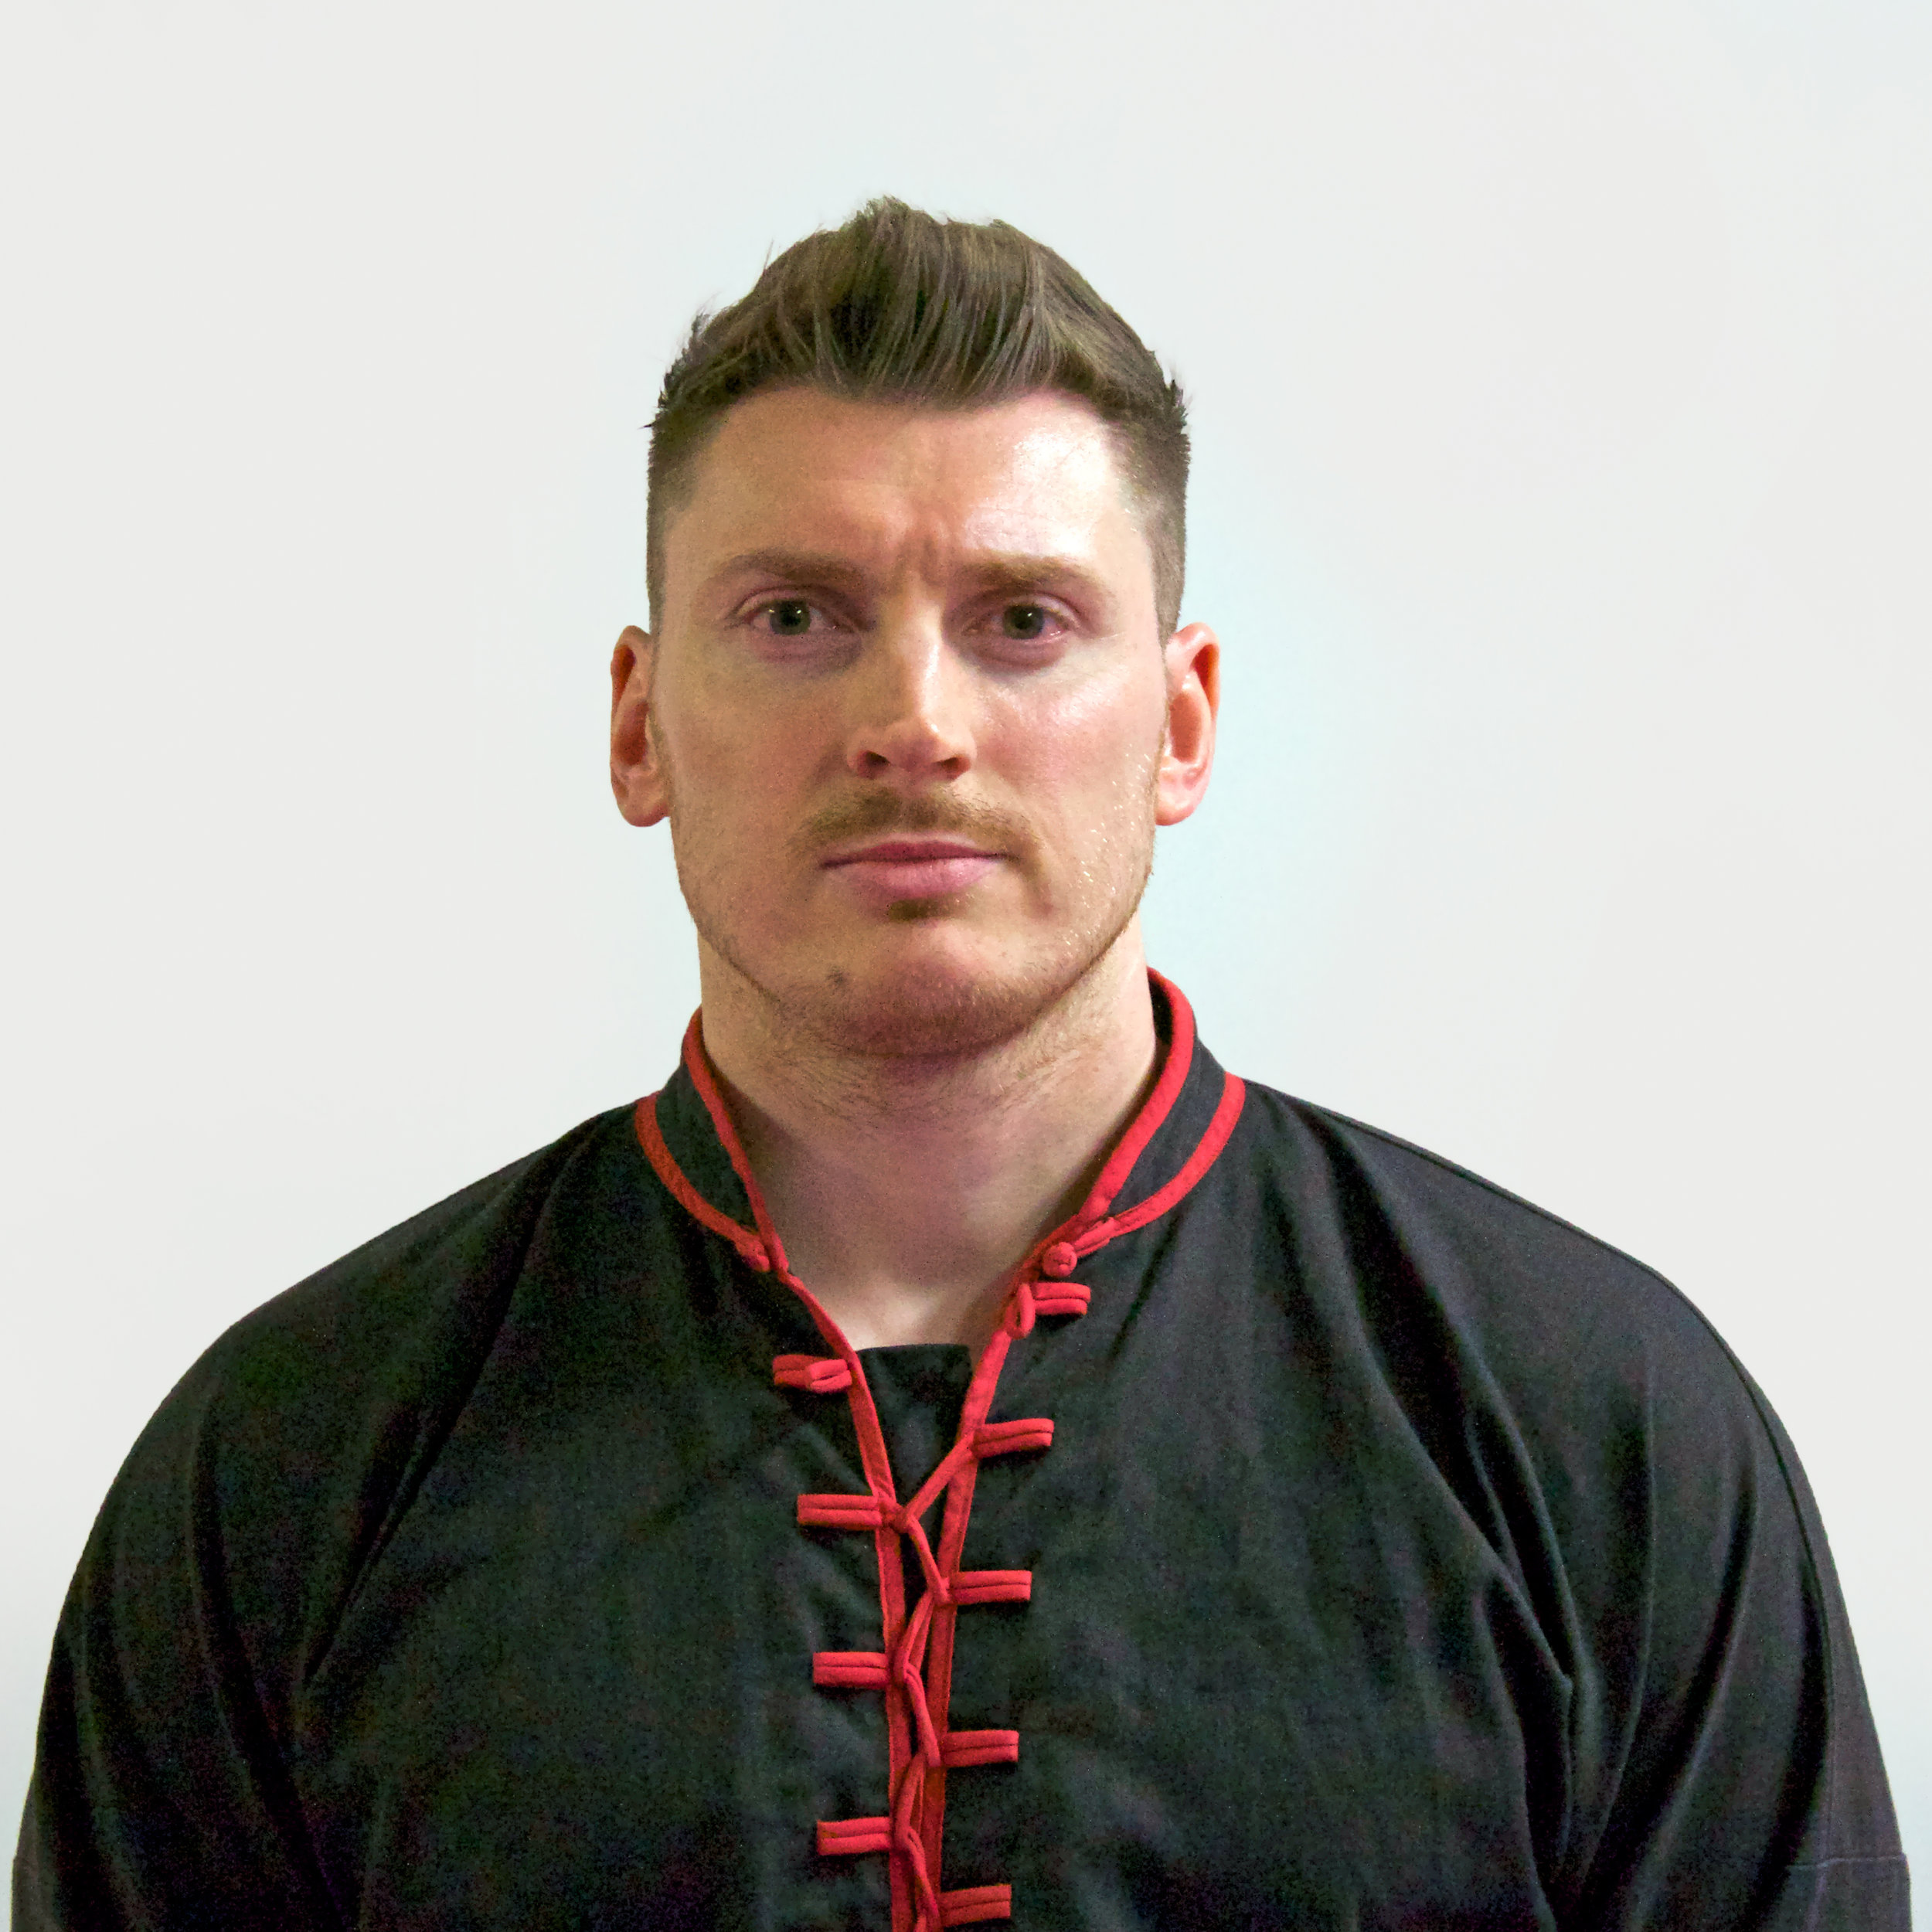 Tai-Sifu Chris Abbott - North-east Norfolk